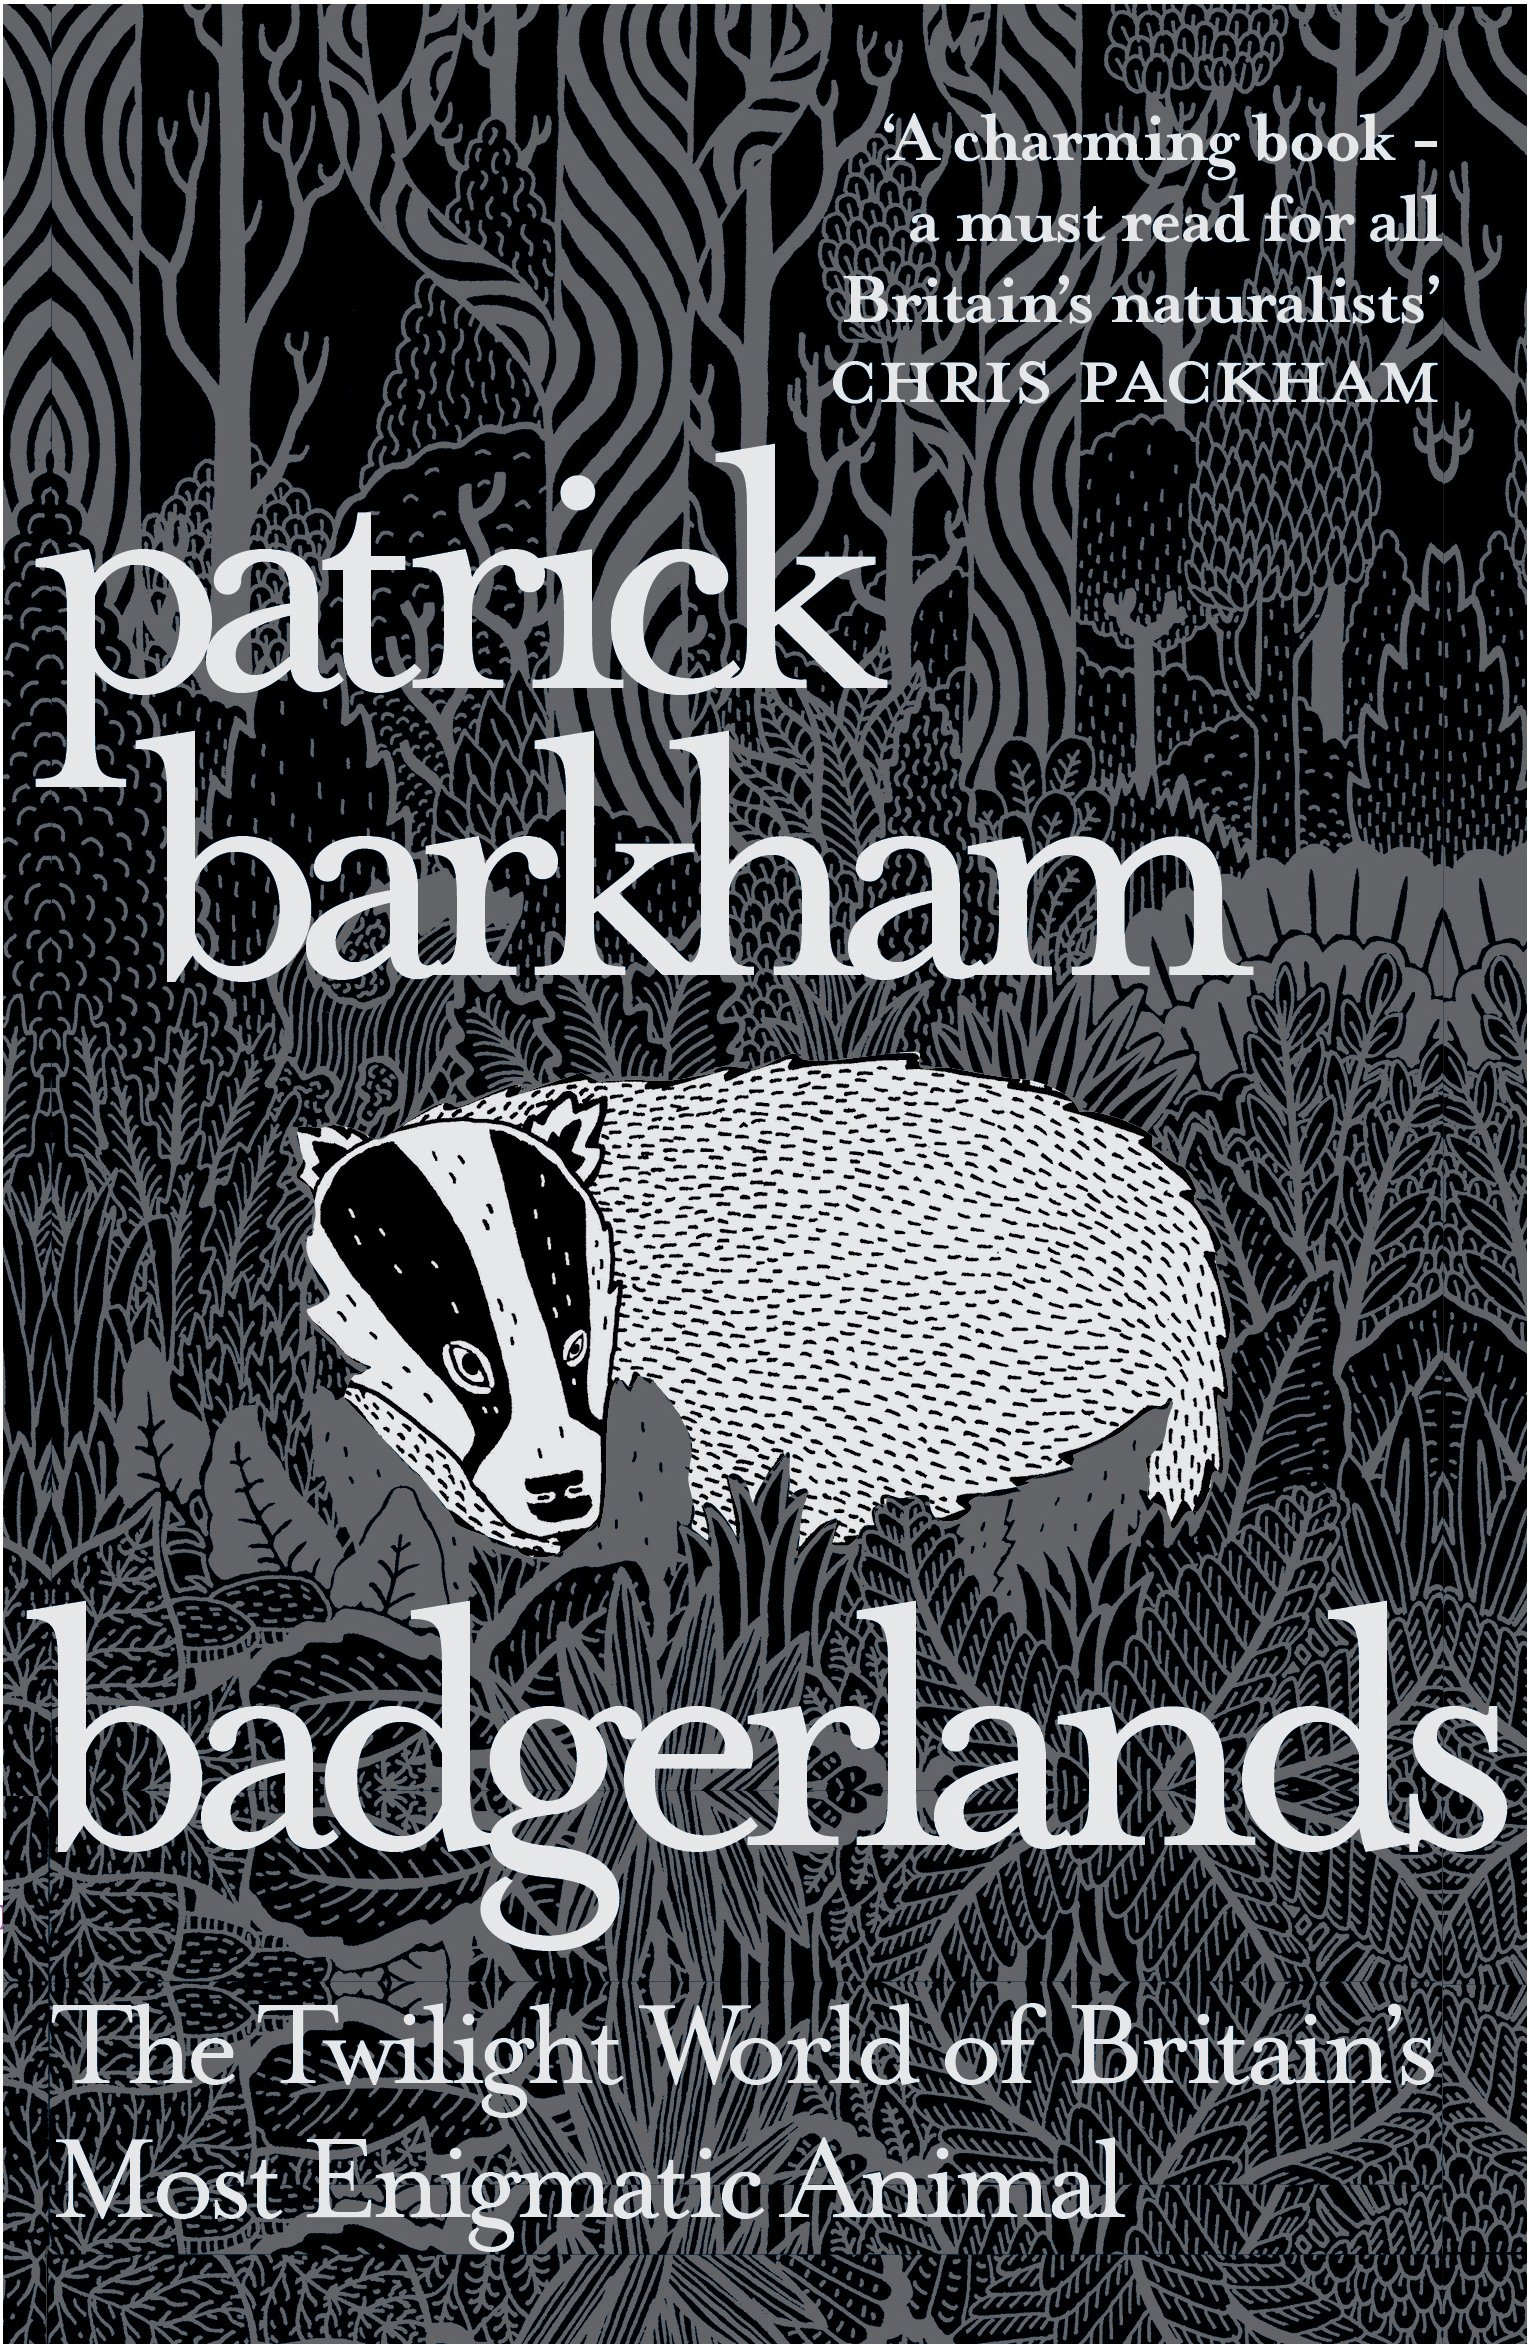 Badgerlands: The Twilight World of Britain's Most Enigmatic